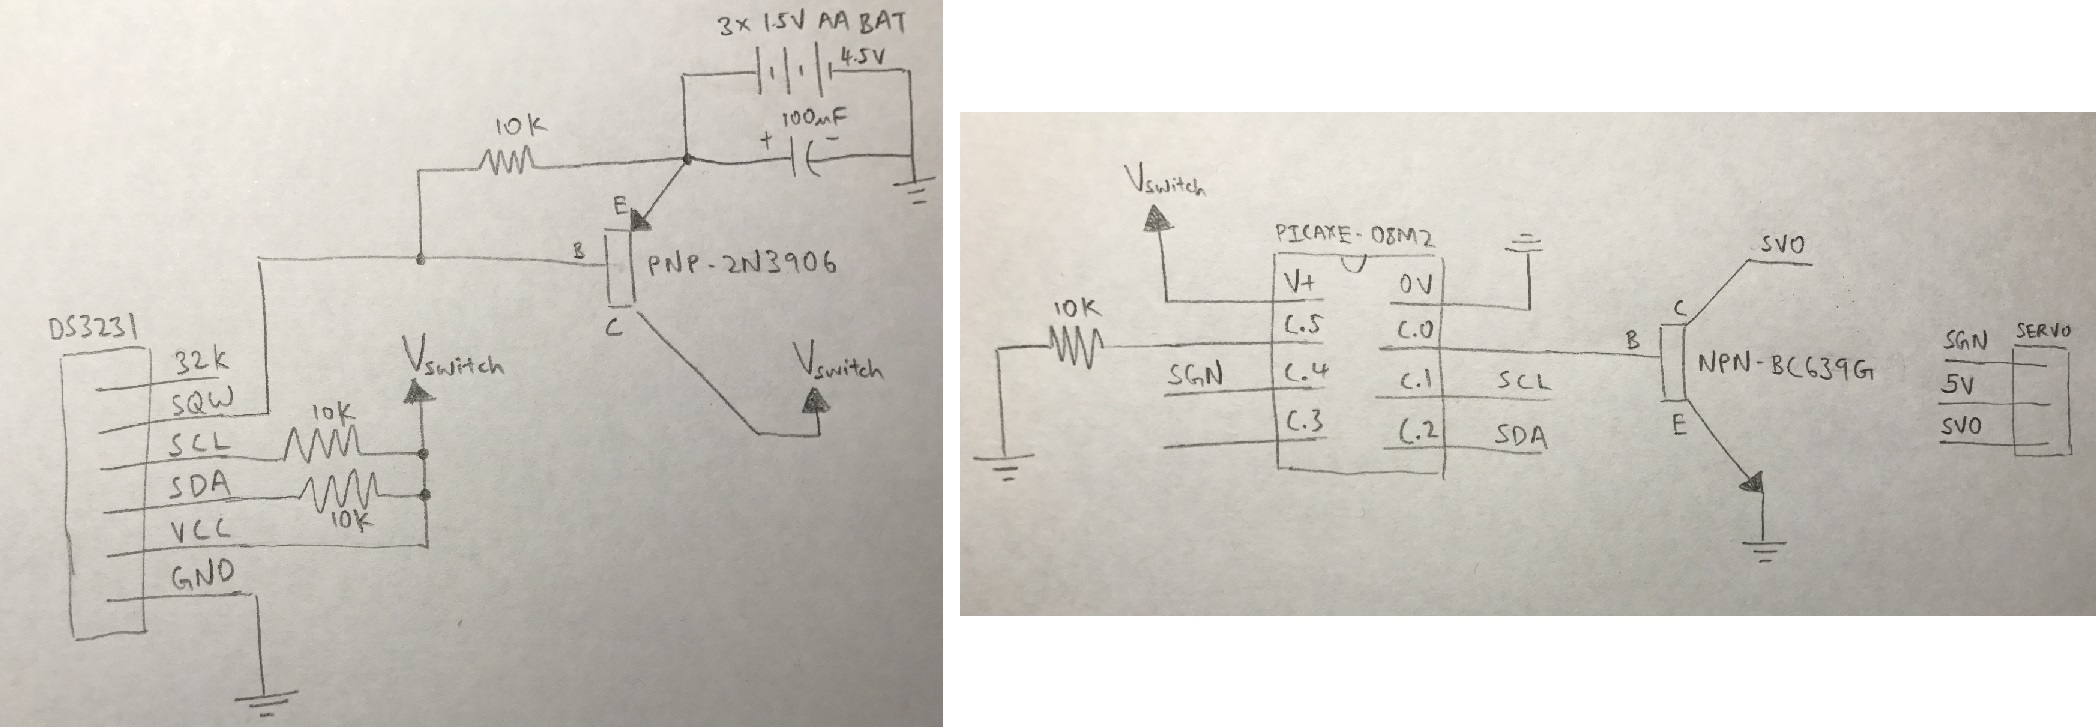 Rtc Ds3231 S Sqw Pin Goes Low When On Vbat And Triggers An